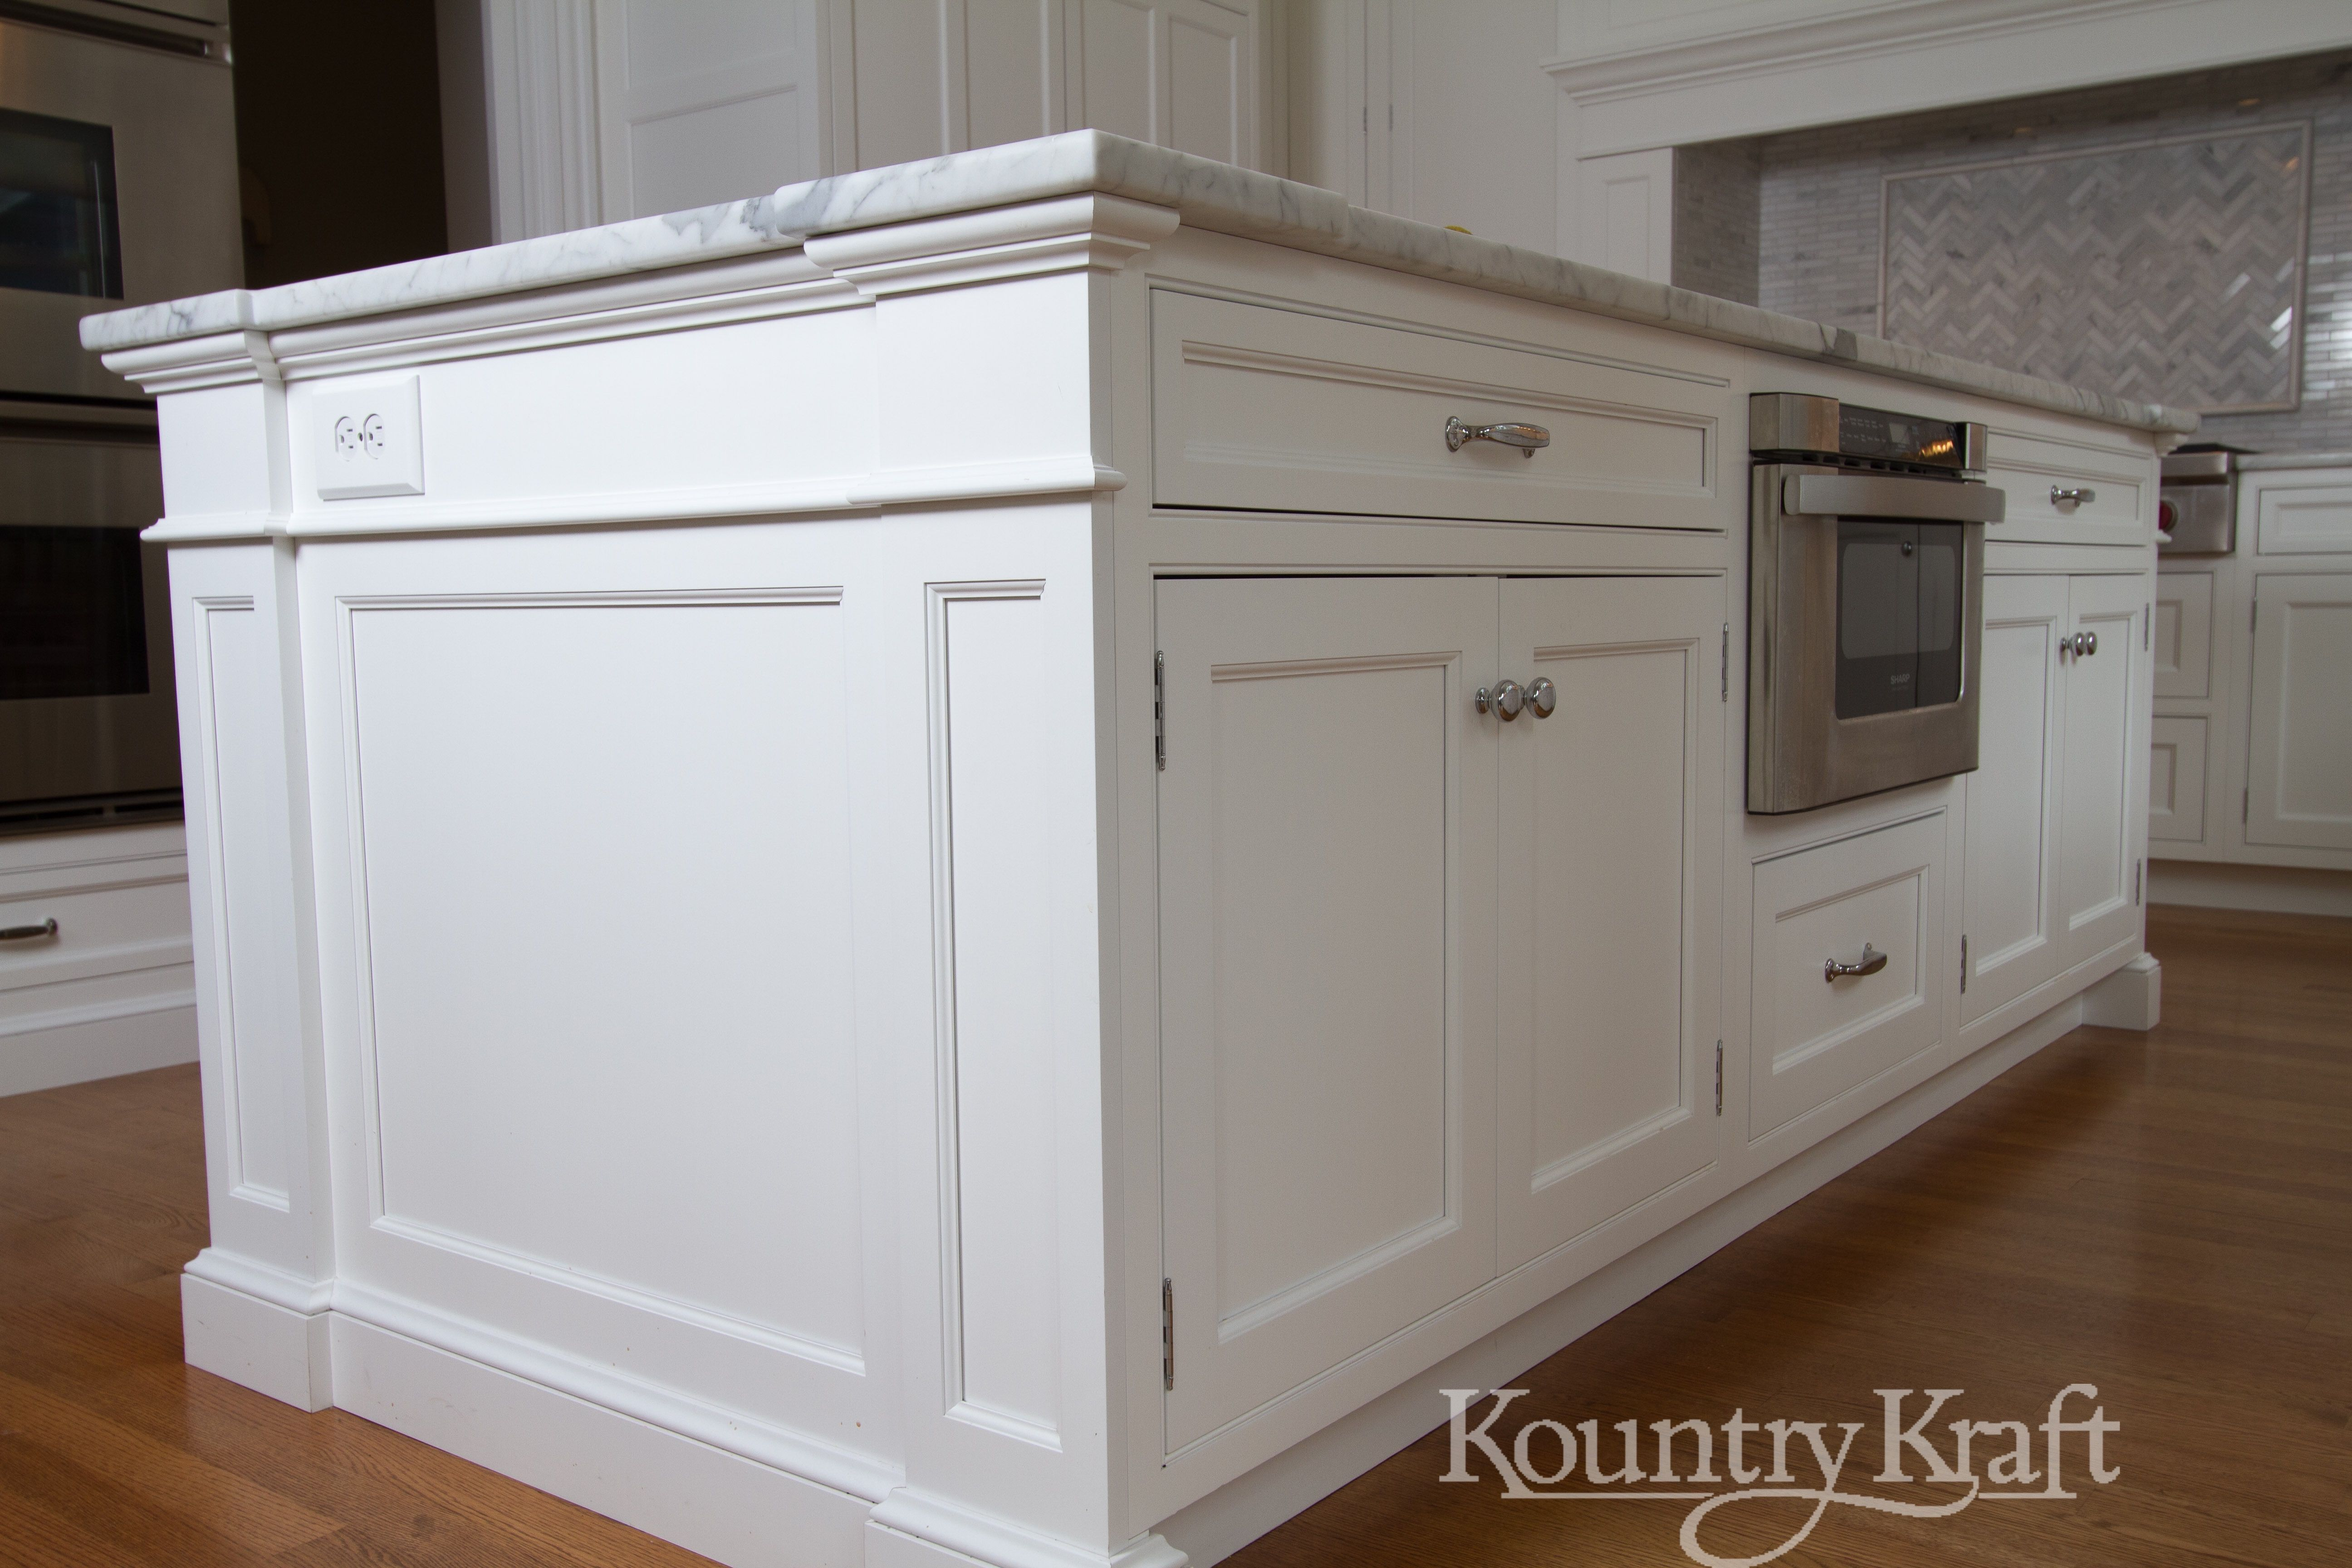 Custom Kitchen Cabinets Designed By James Kershaw Ckd Of James Kershaw Associates Custom Kitchen Island Custom Kitchen Cabinets Design Custom Kitchen Cabinets